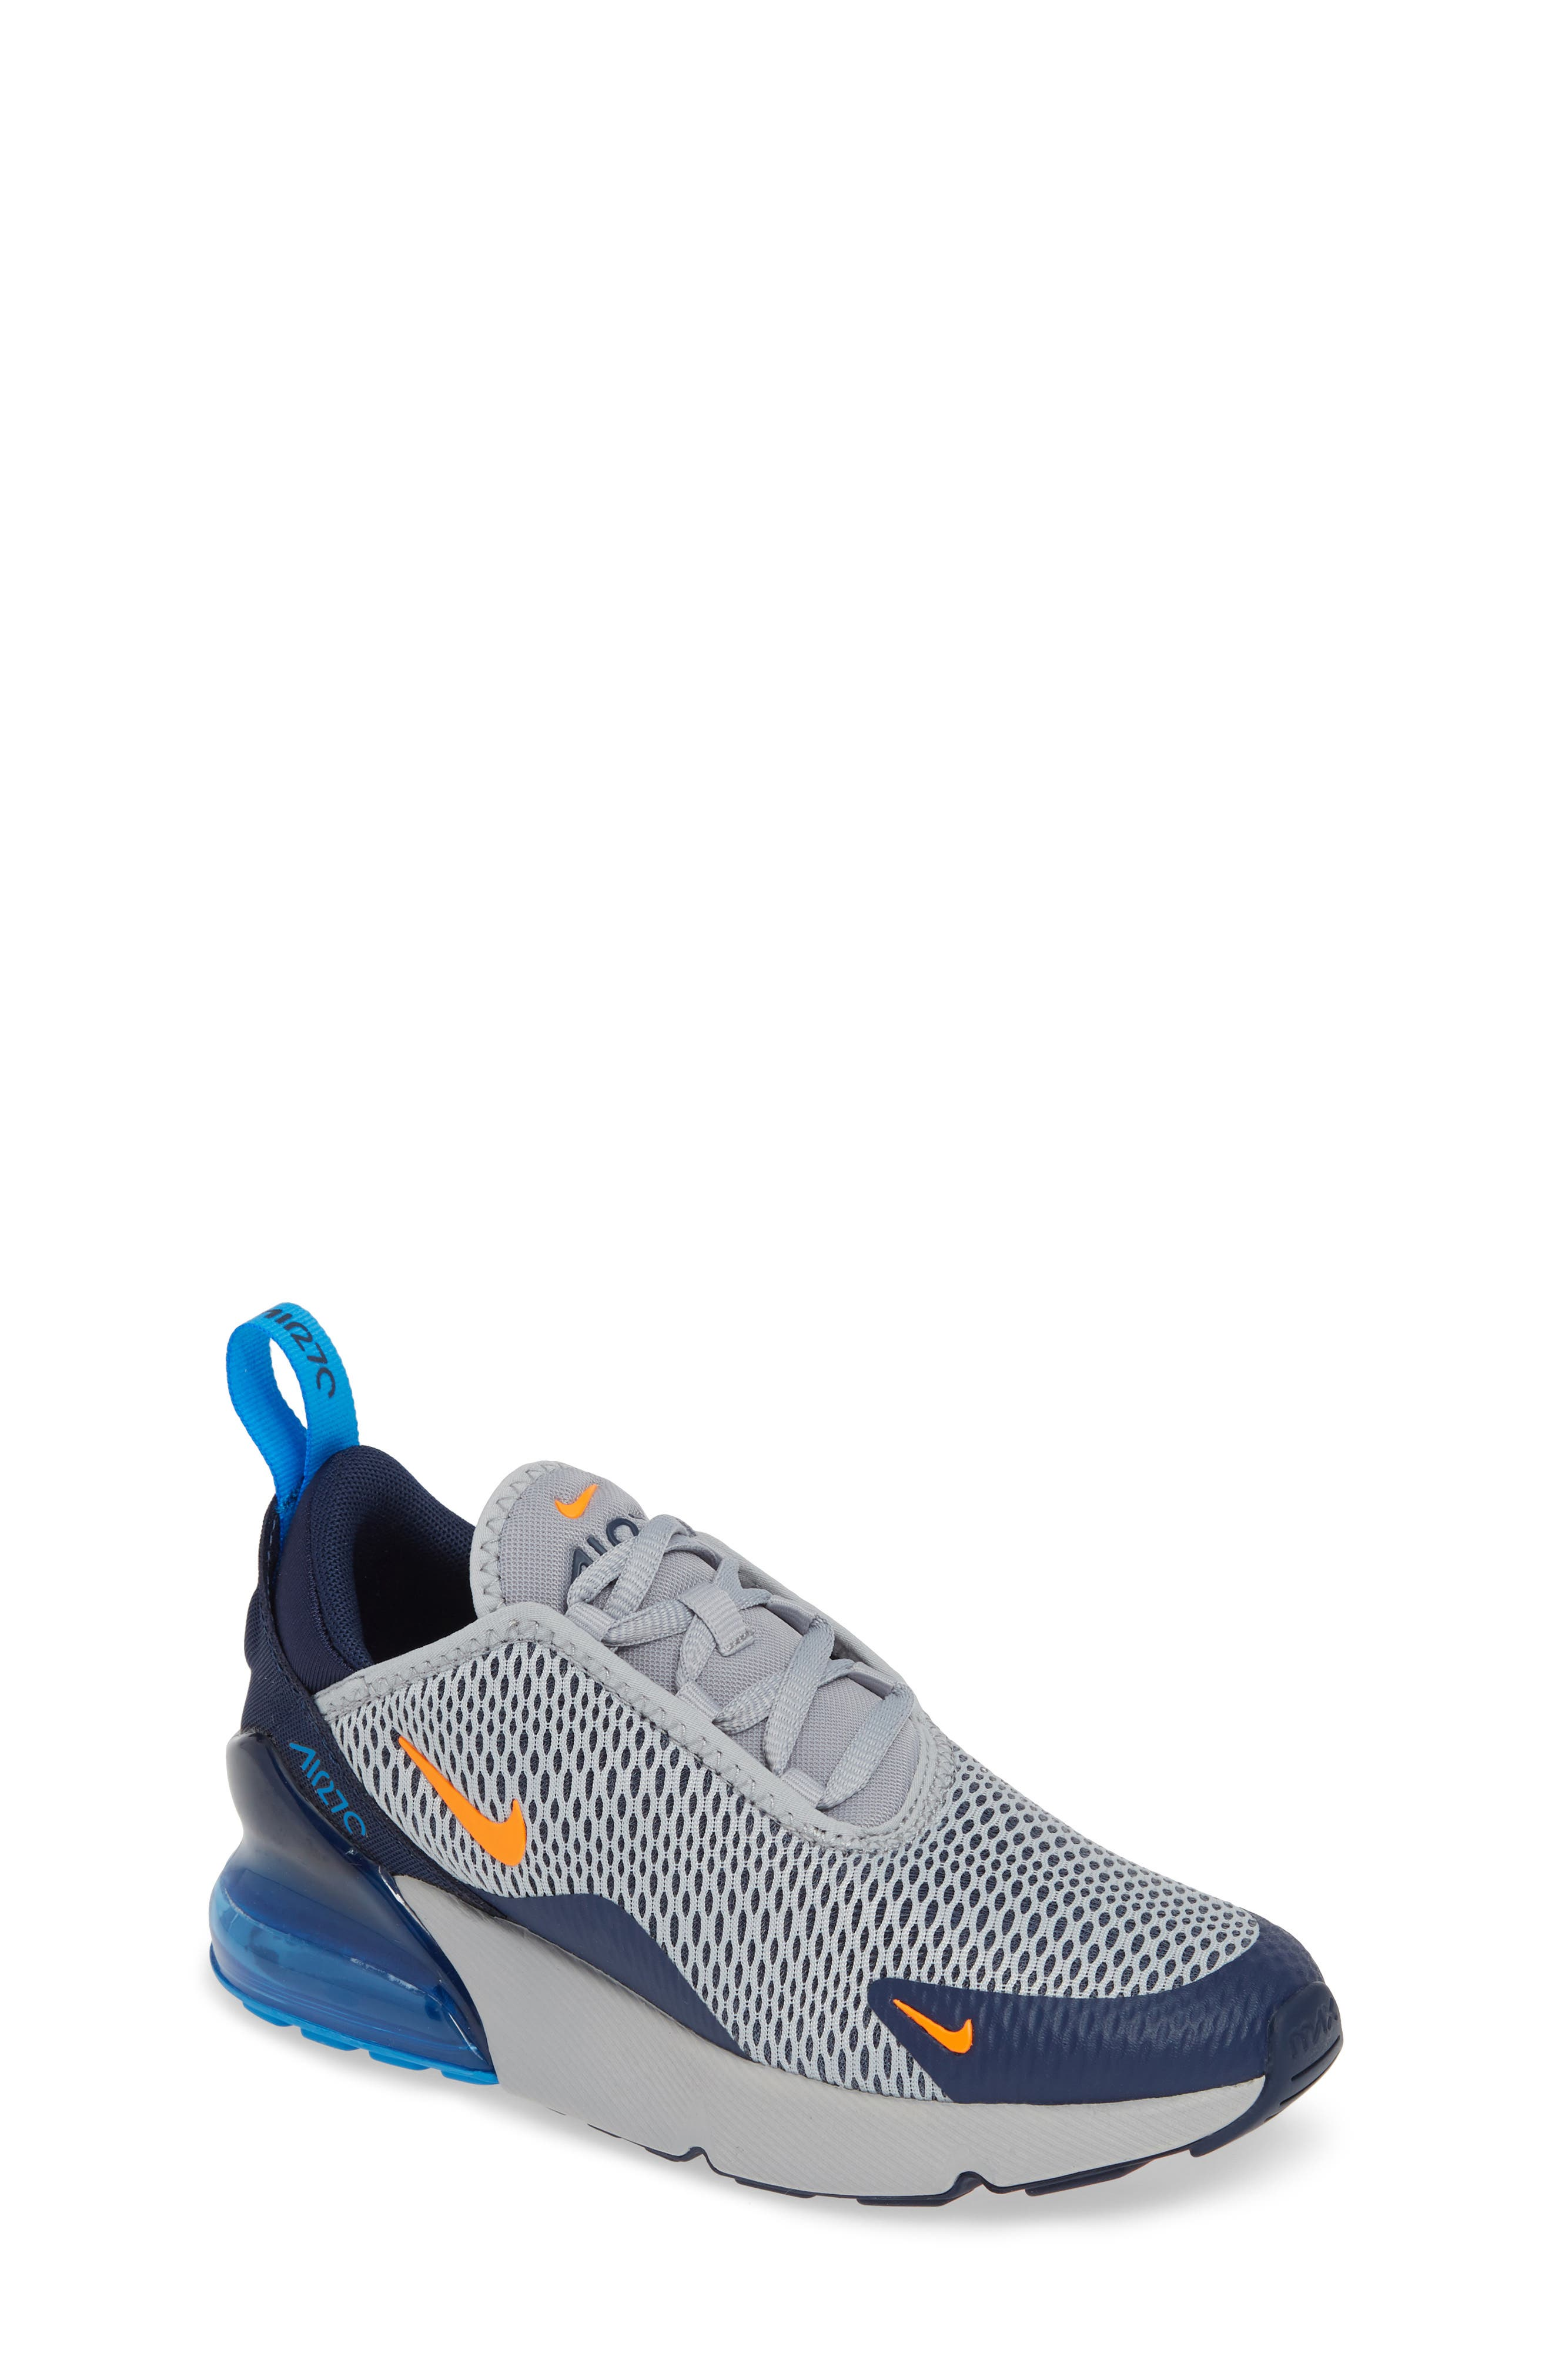 a8df346c1469 Boys  Nike Sneakers   Athletic Shoes